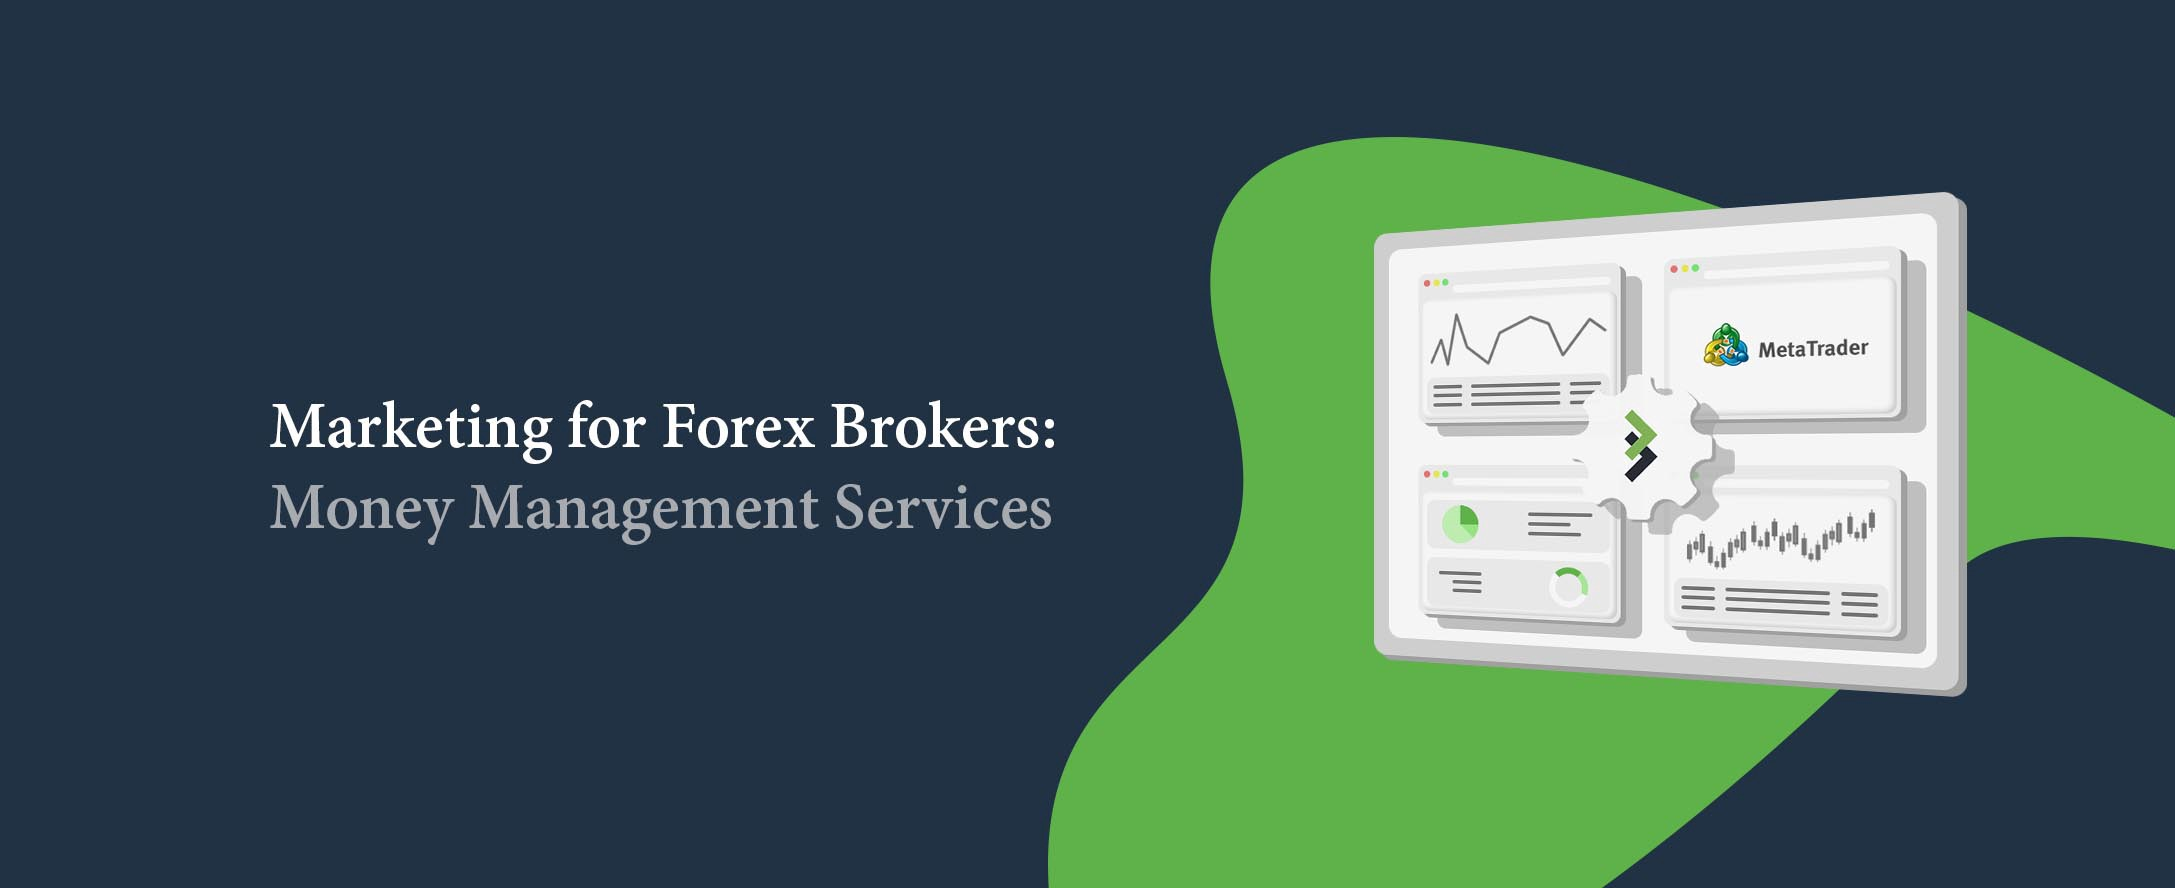 Marketing for forex brokers: MT4/MT5 PAMM and MAM Software